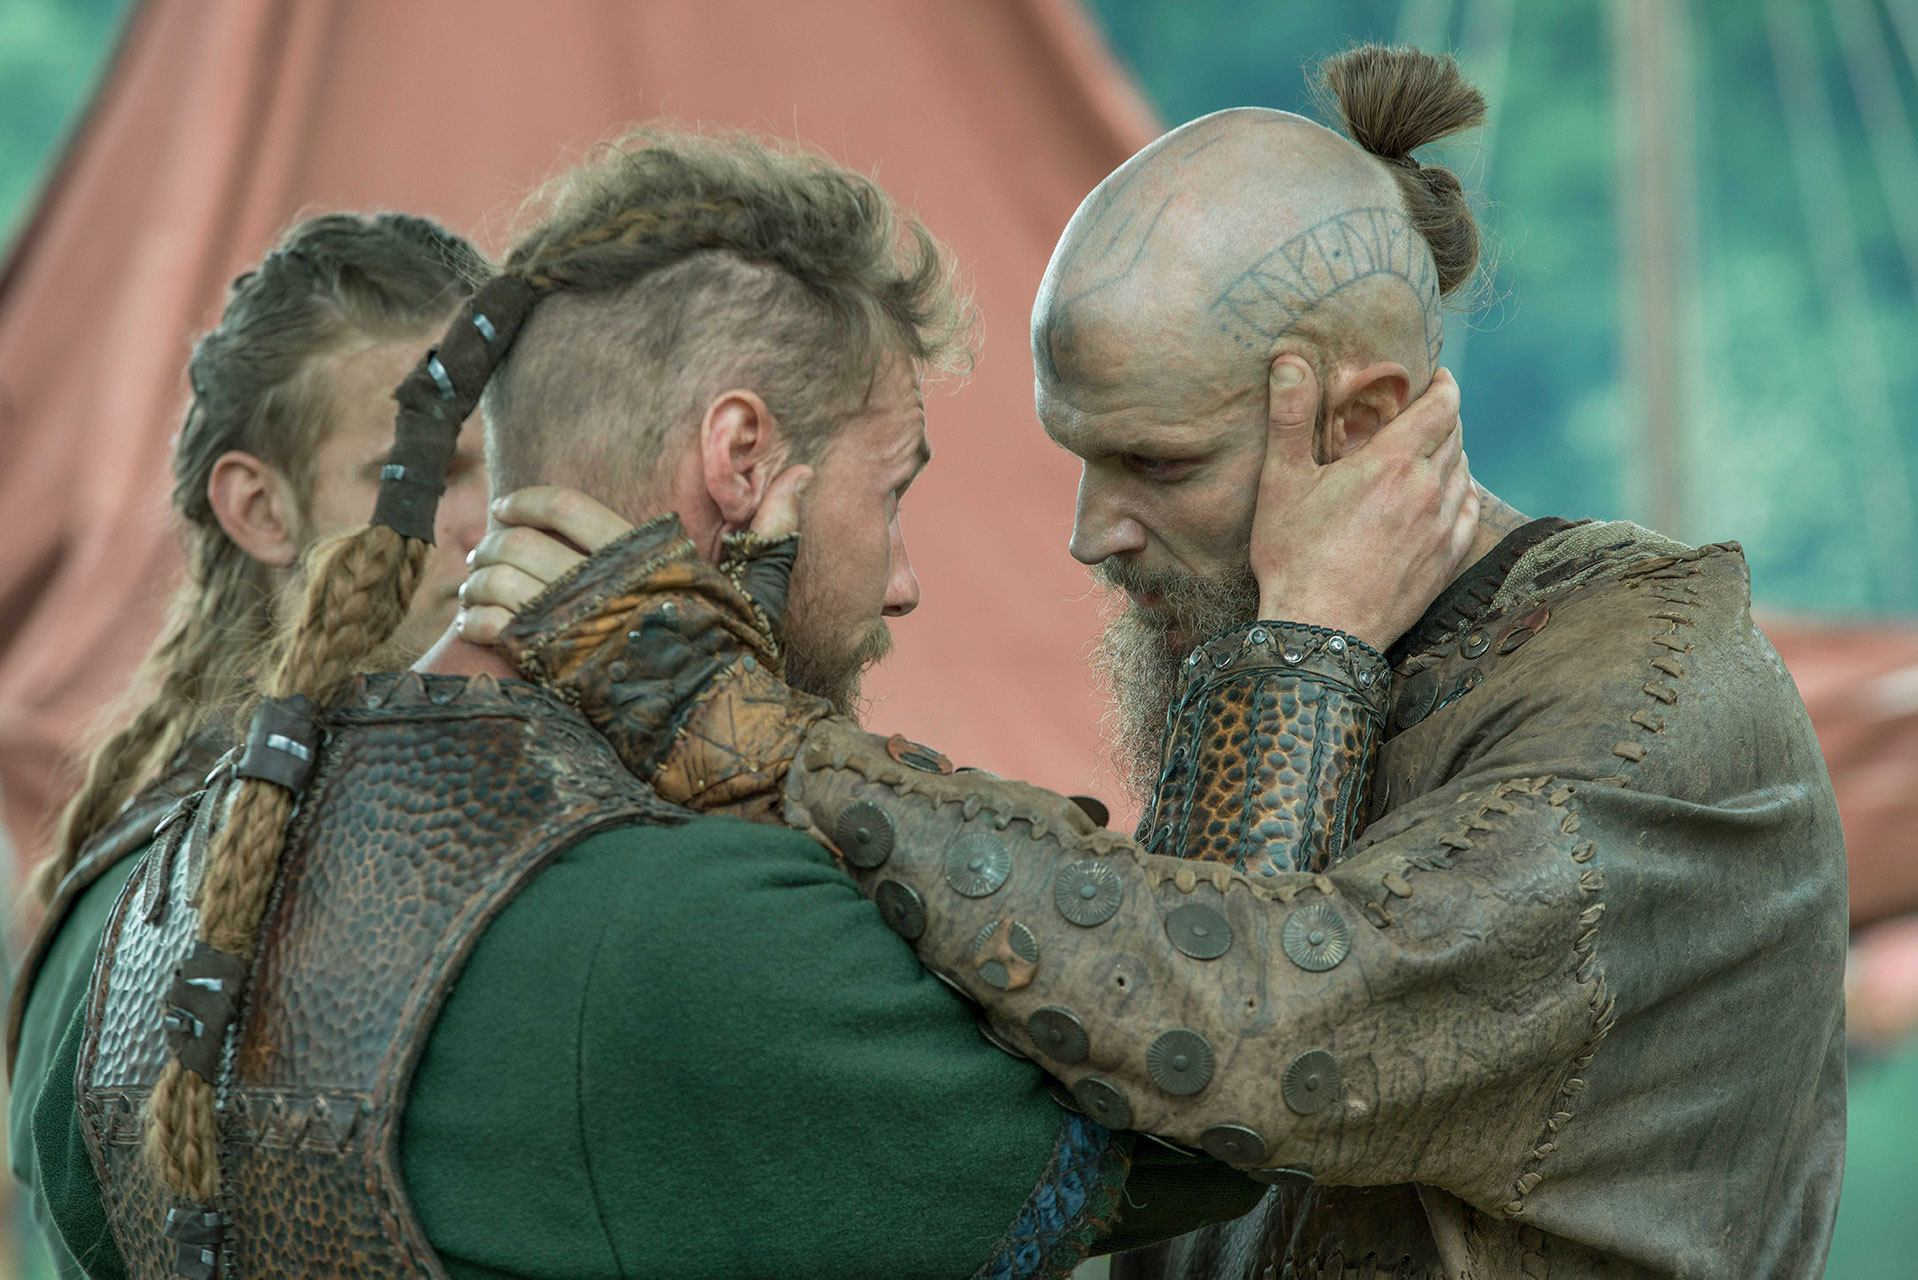 Viking Hairstyles: Ragnor with long braided ponytail, holding fellow actor in film still